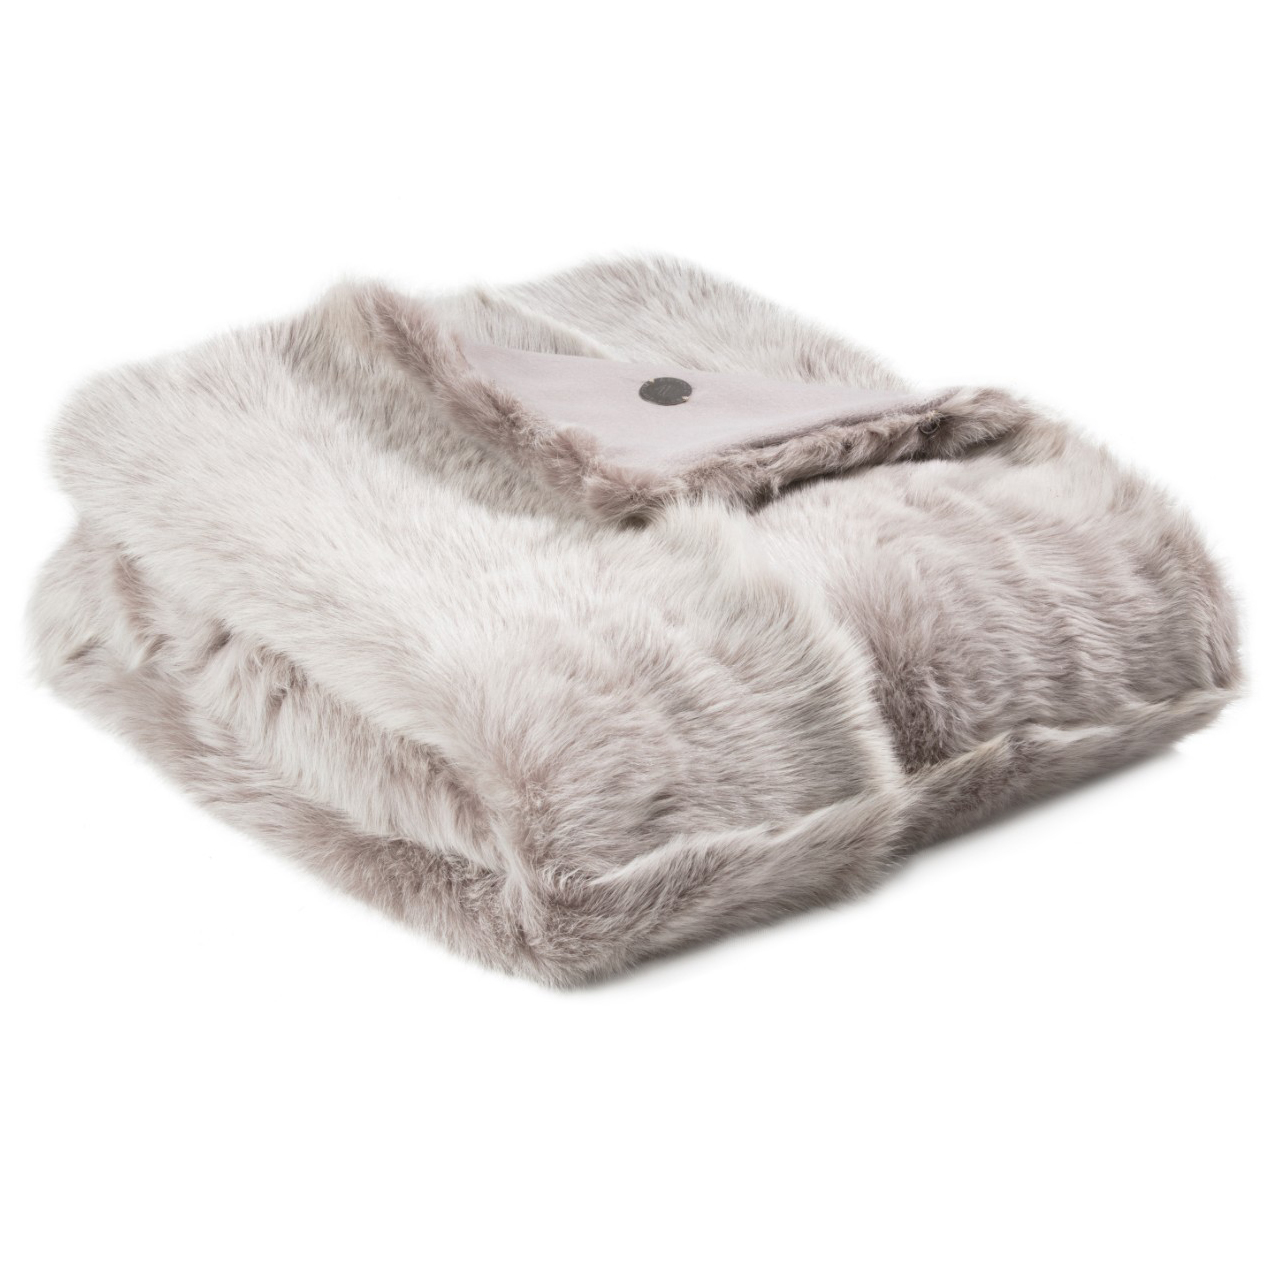 NEW-Shearling Throw- Topo-134x150cm (STTOPTO134150) - ANVOGG FEEL SHEARLING | ANVOGG